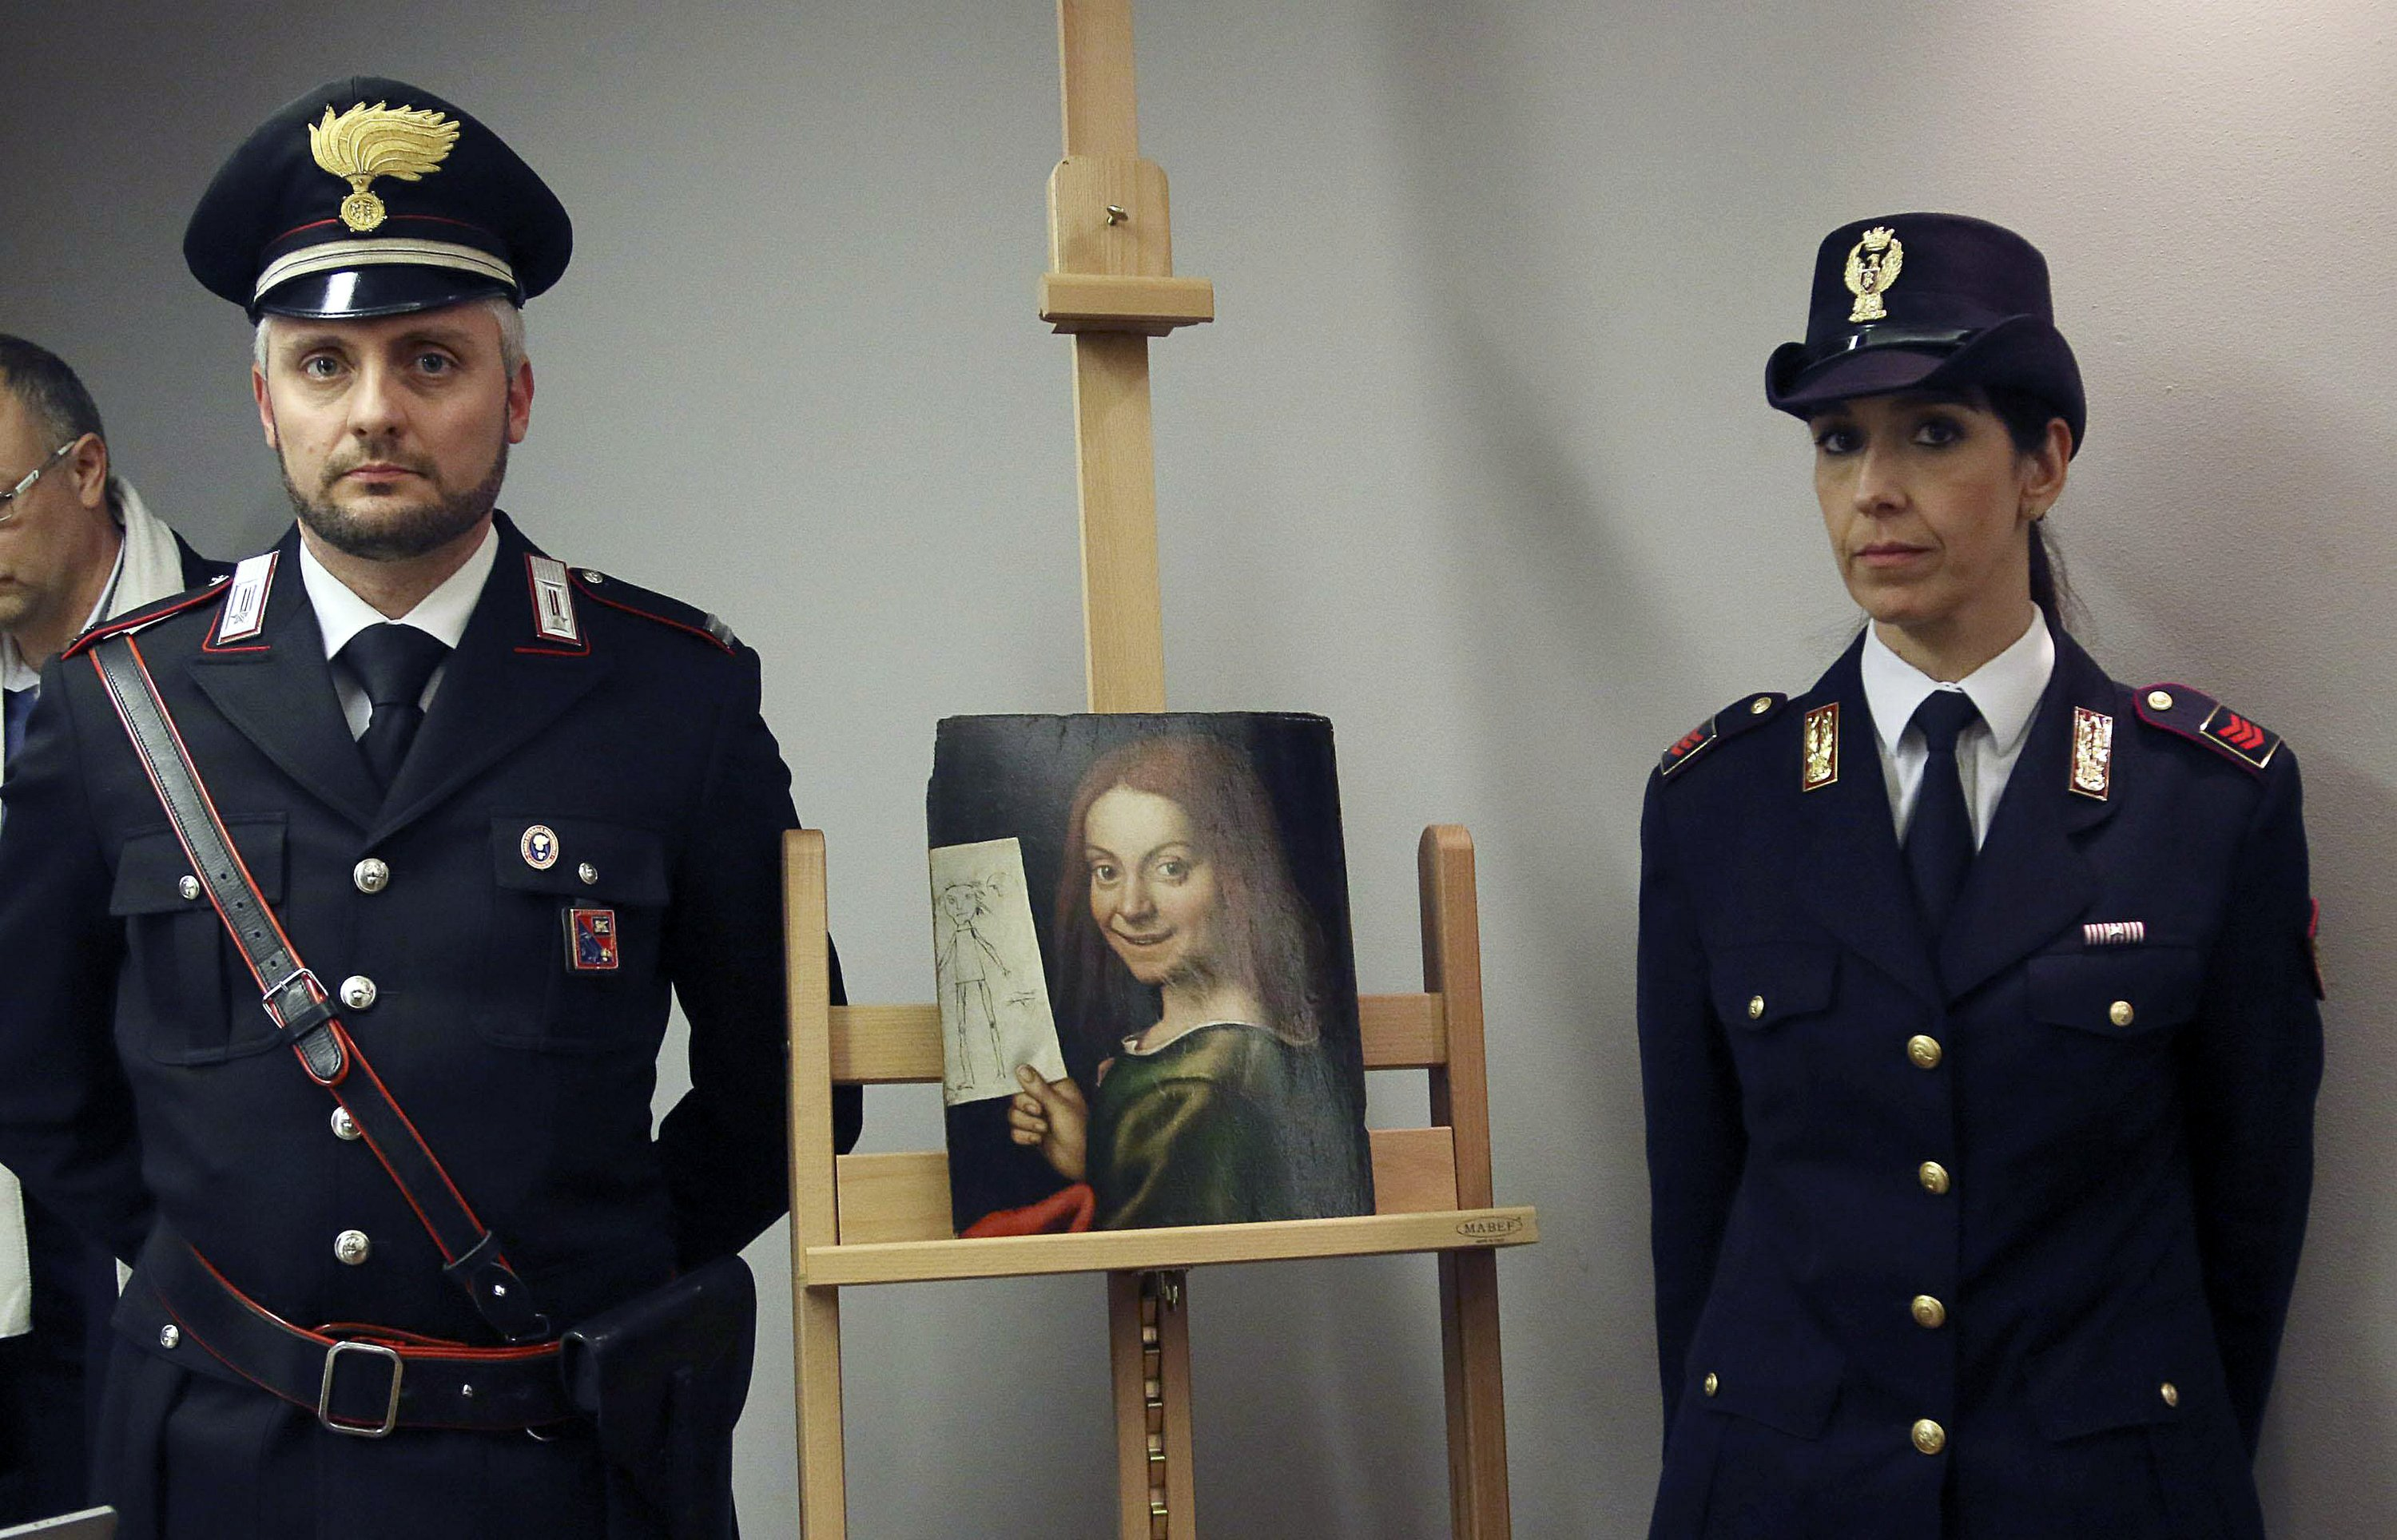 17 stolen masterpieces returned to Italy with only scratches